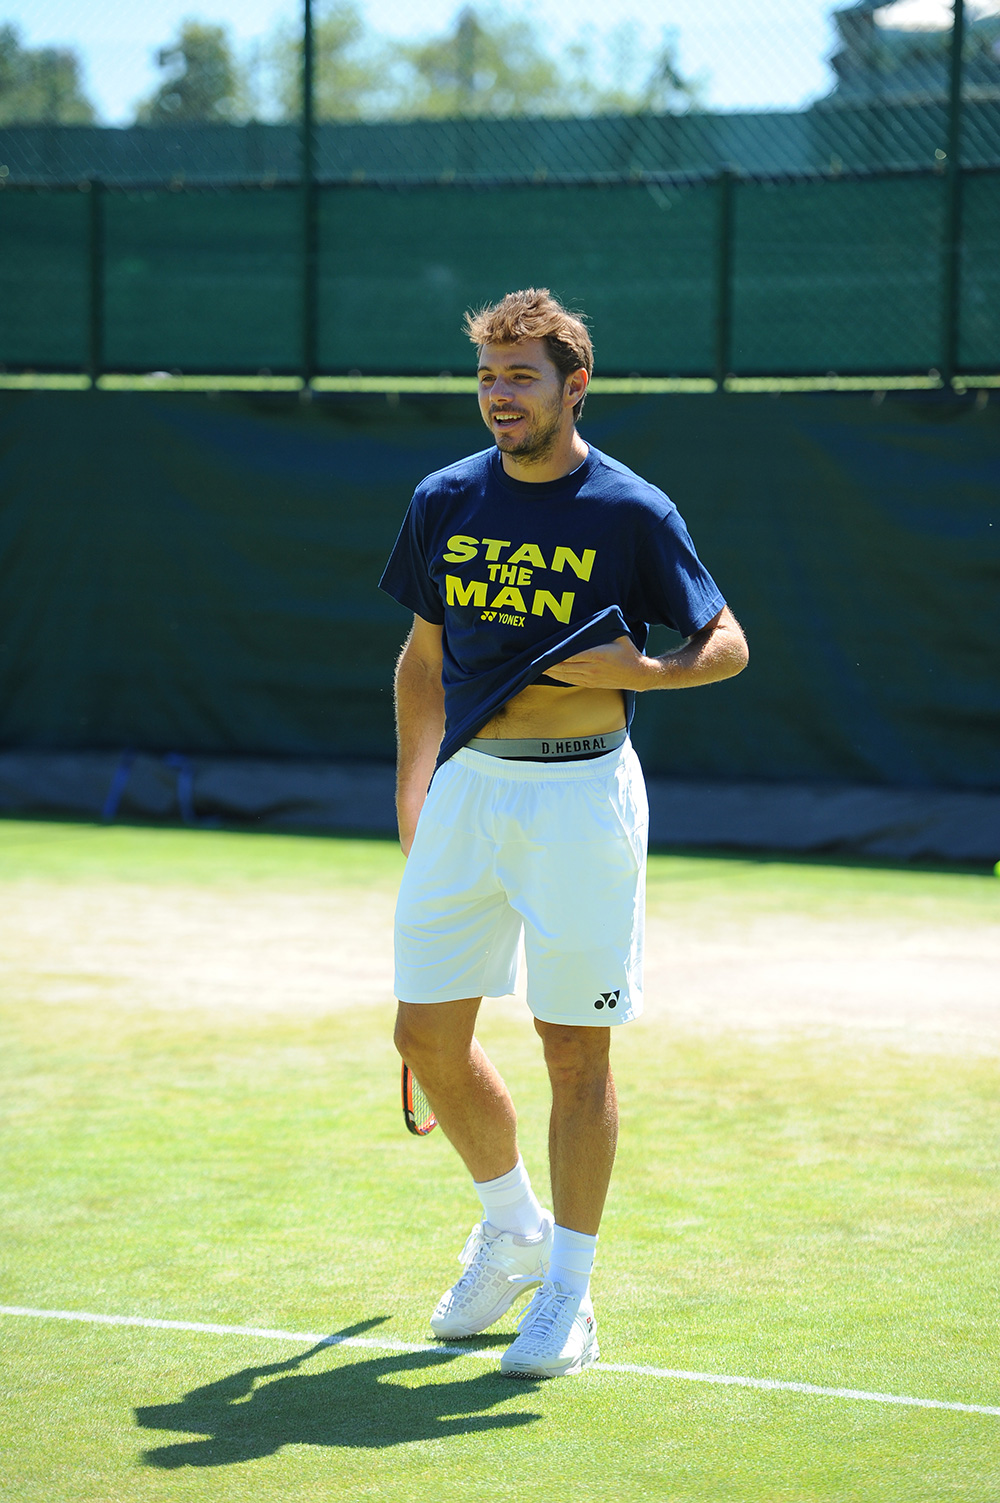 Tennis Star Stan Wawrinka in D.Hedral